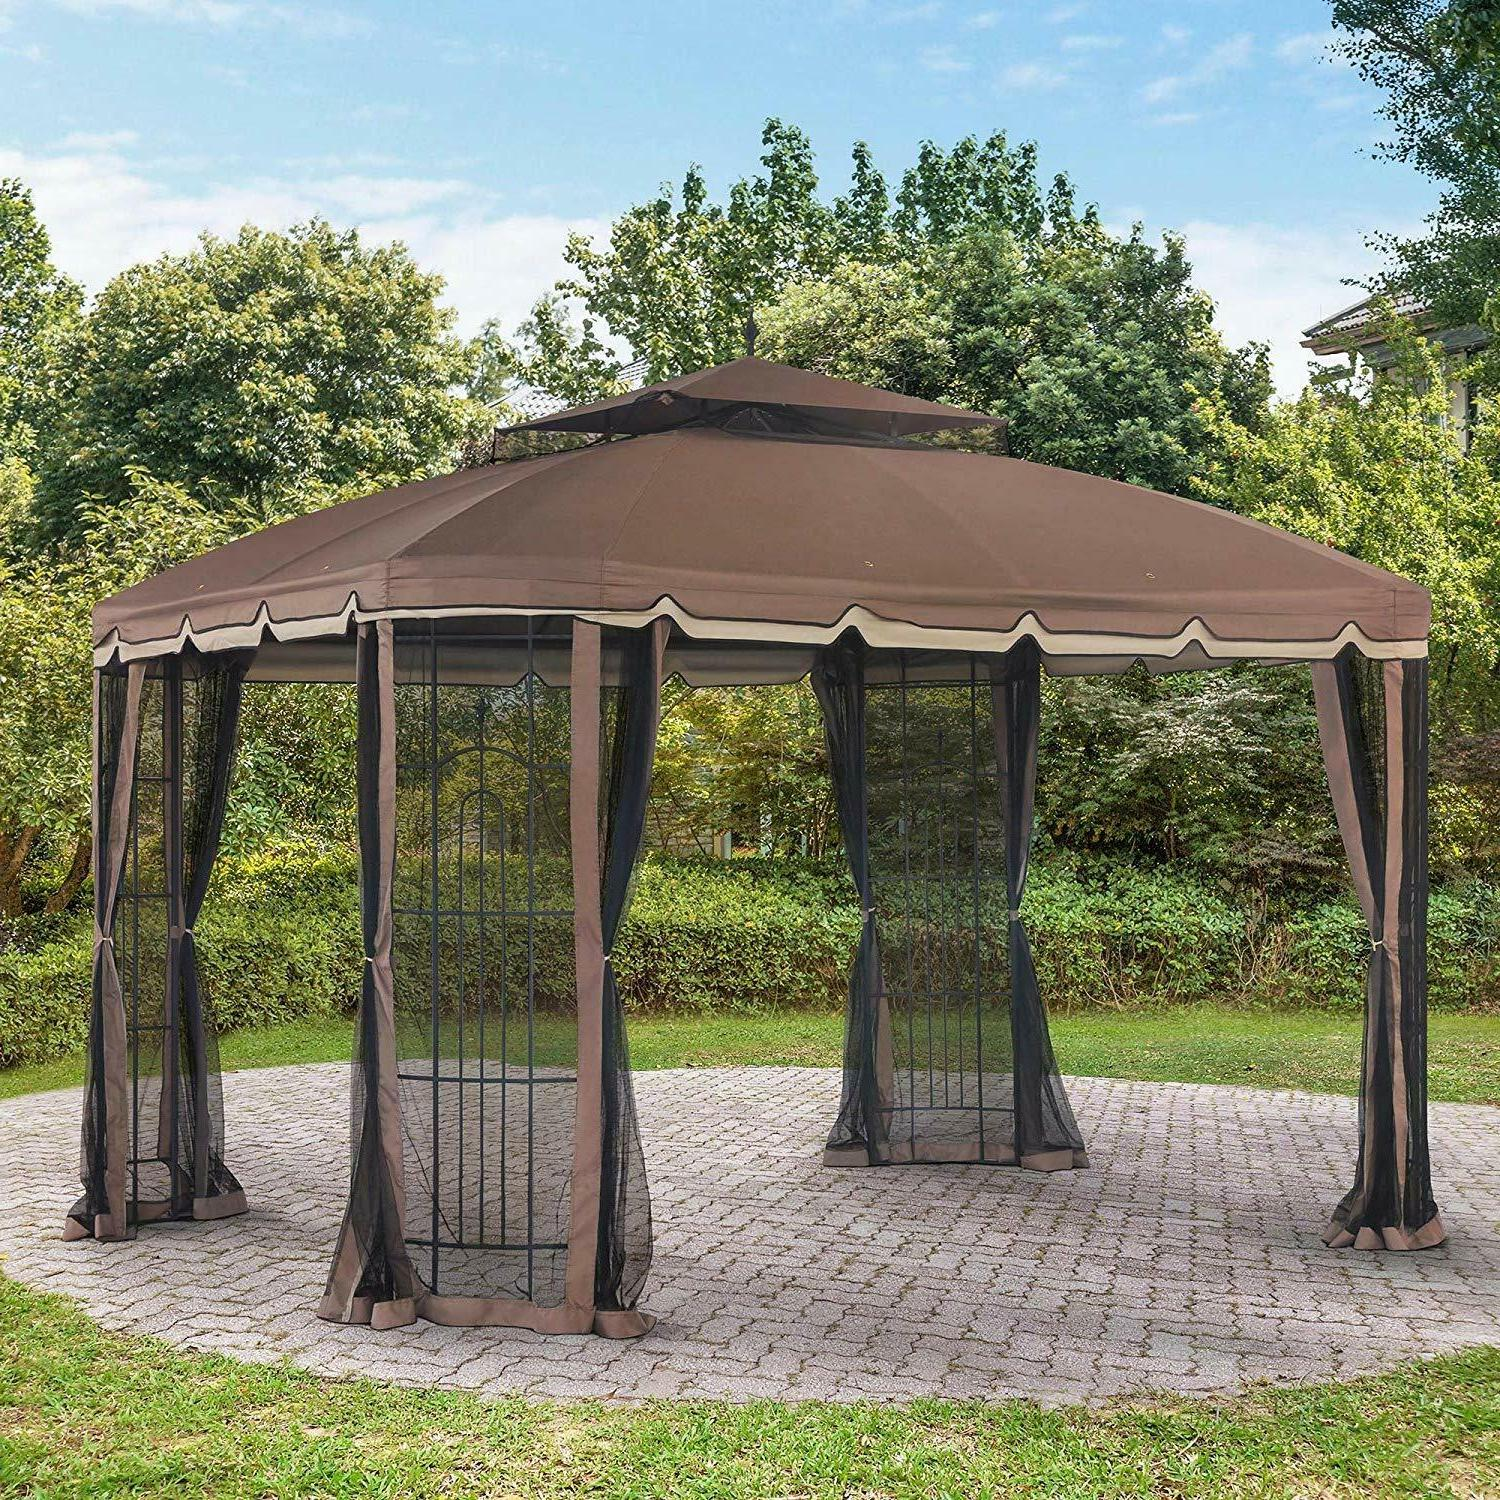 Replacement canopy set for 10x12ft bay window gazebo for out